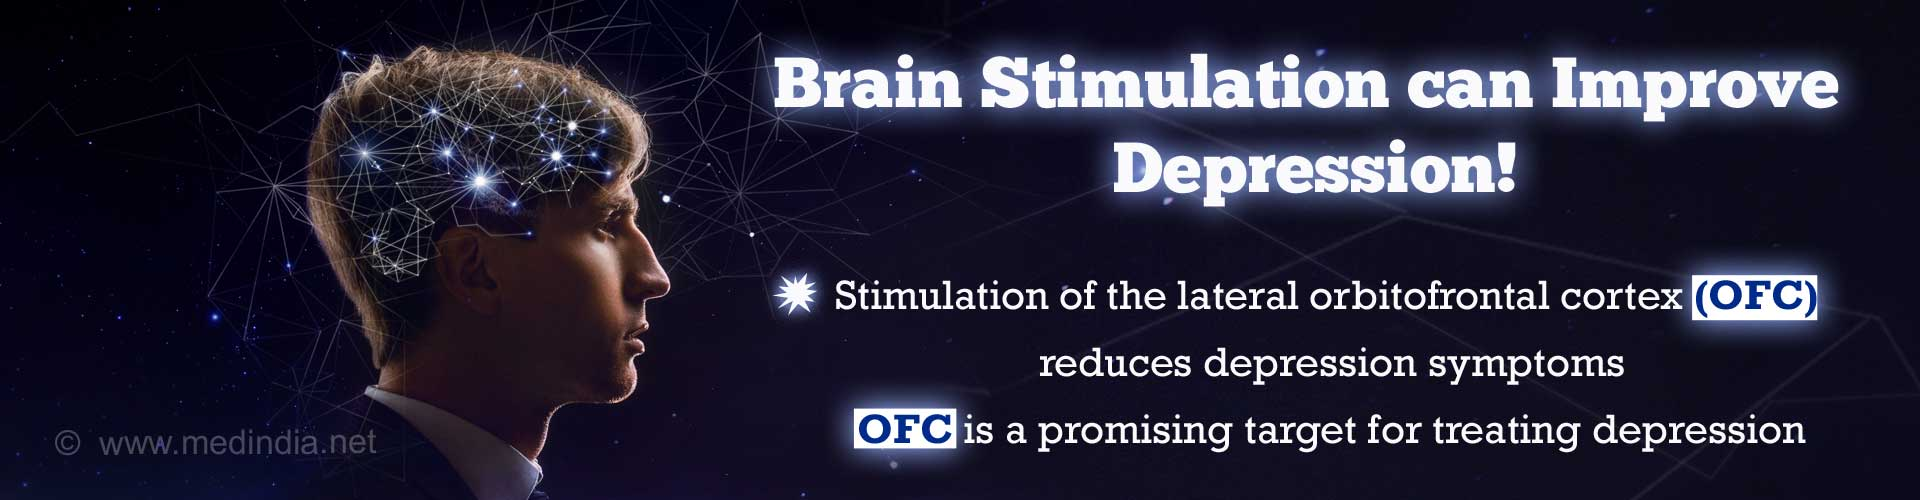 Brain stimulation can improve depression. Stimulation of the lateral orbitofrontal cortex (OFC) reduces depression symptoms. OFC is a promising target for treating depression.